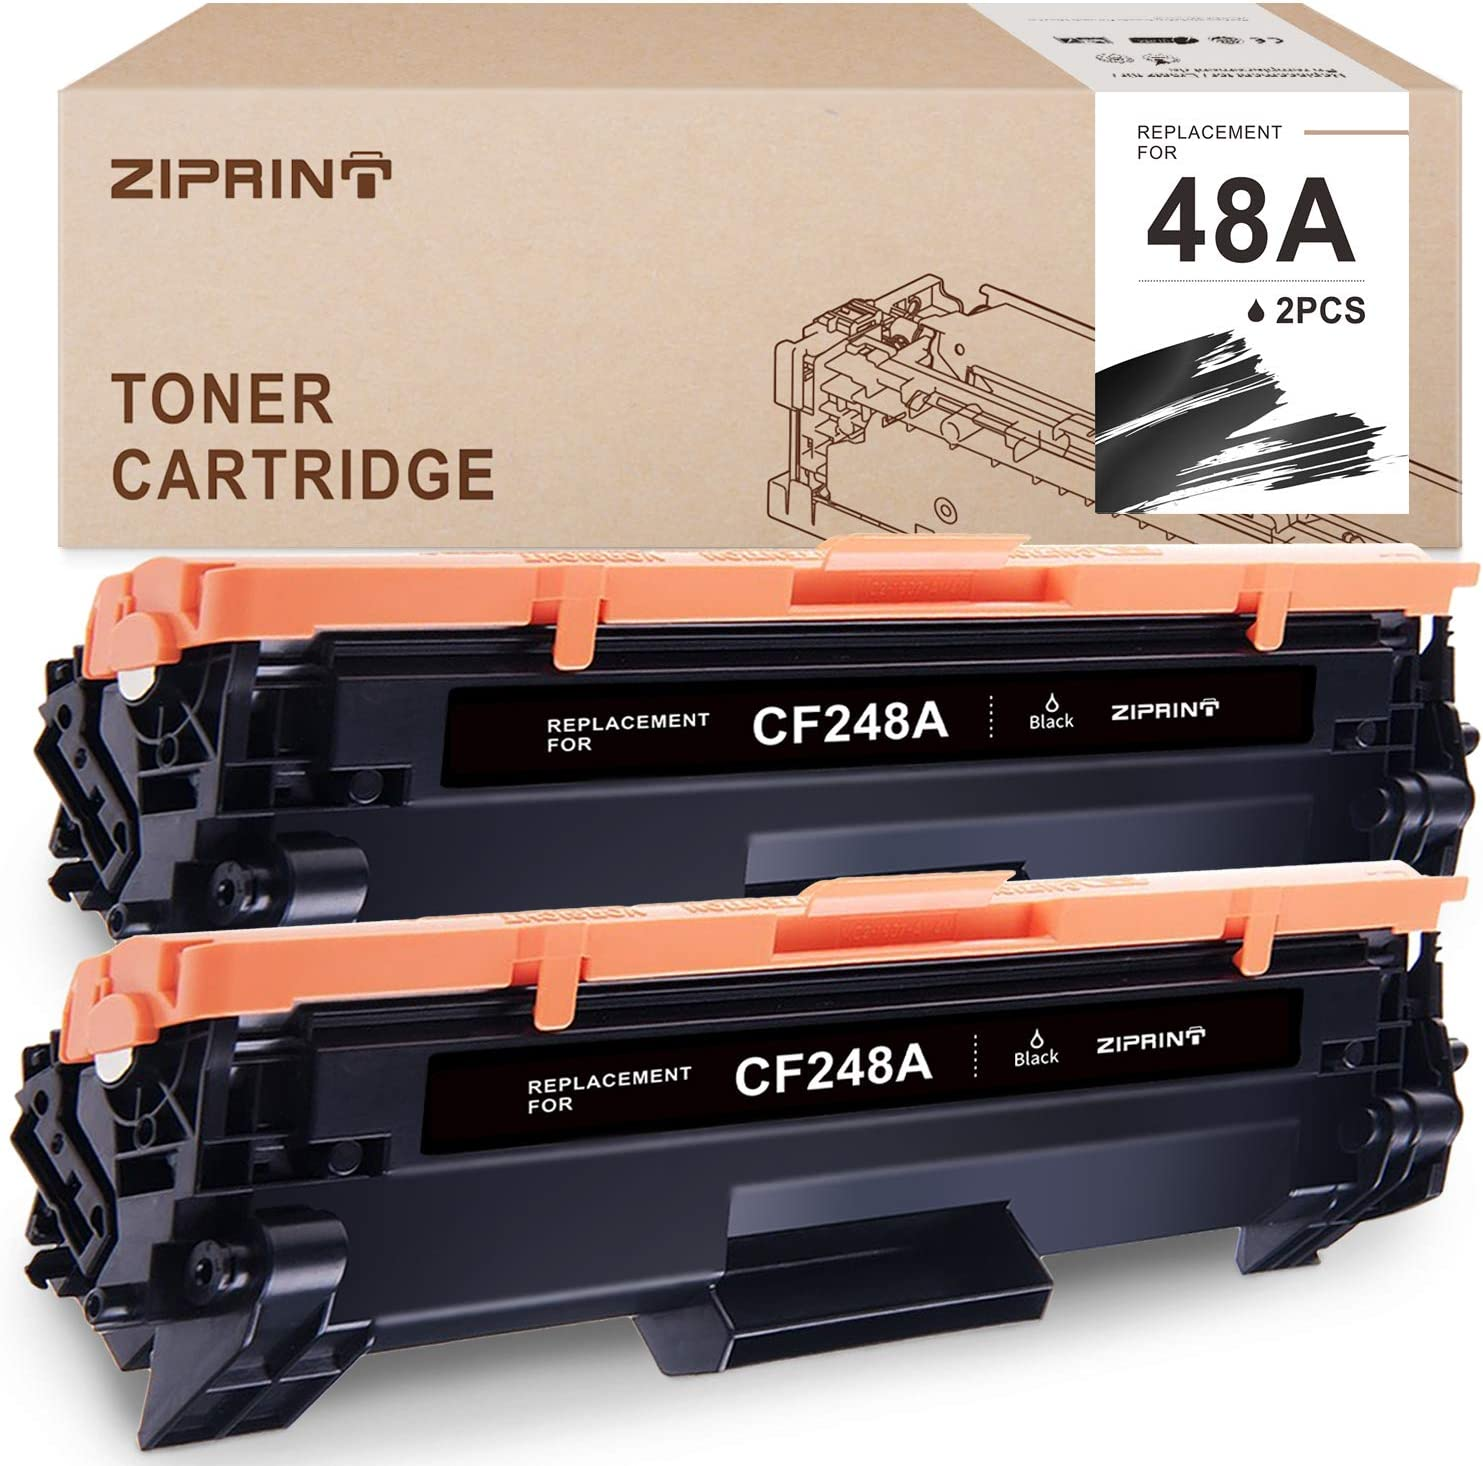 ZIPRINT Compatible Toner Cartridge Replacement for HP 48A CF248A for HP Laserjet Pro M16 M15 M31w Pro MFP M28 M29 Prnter (Black, 2-Pack)